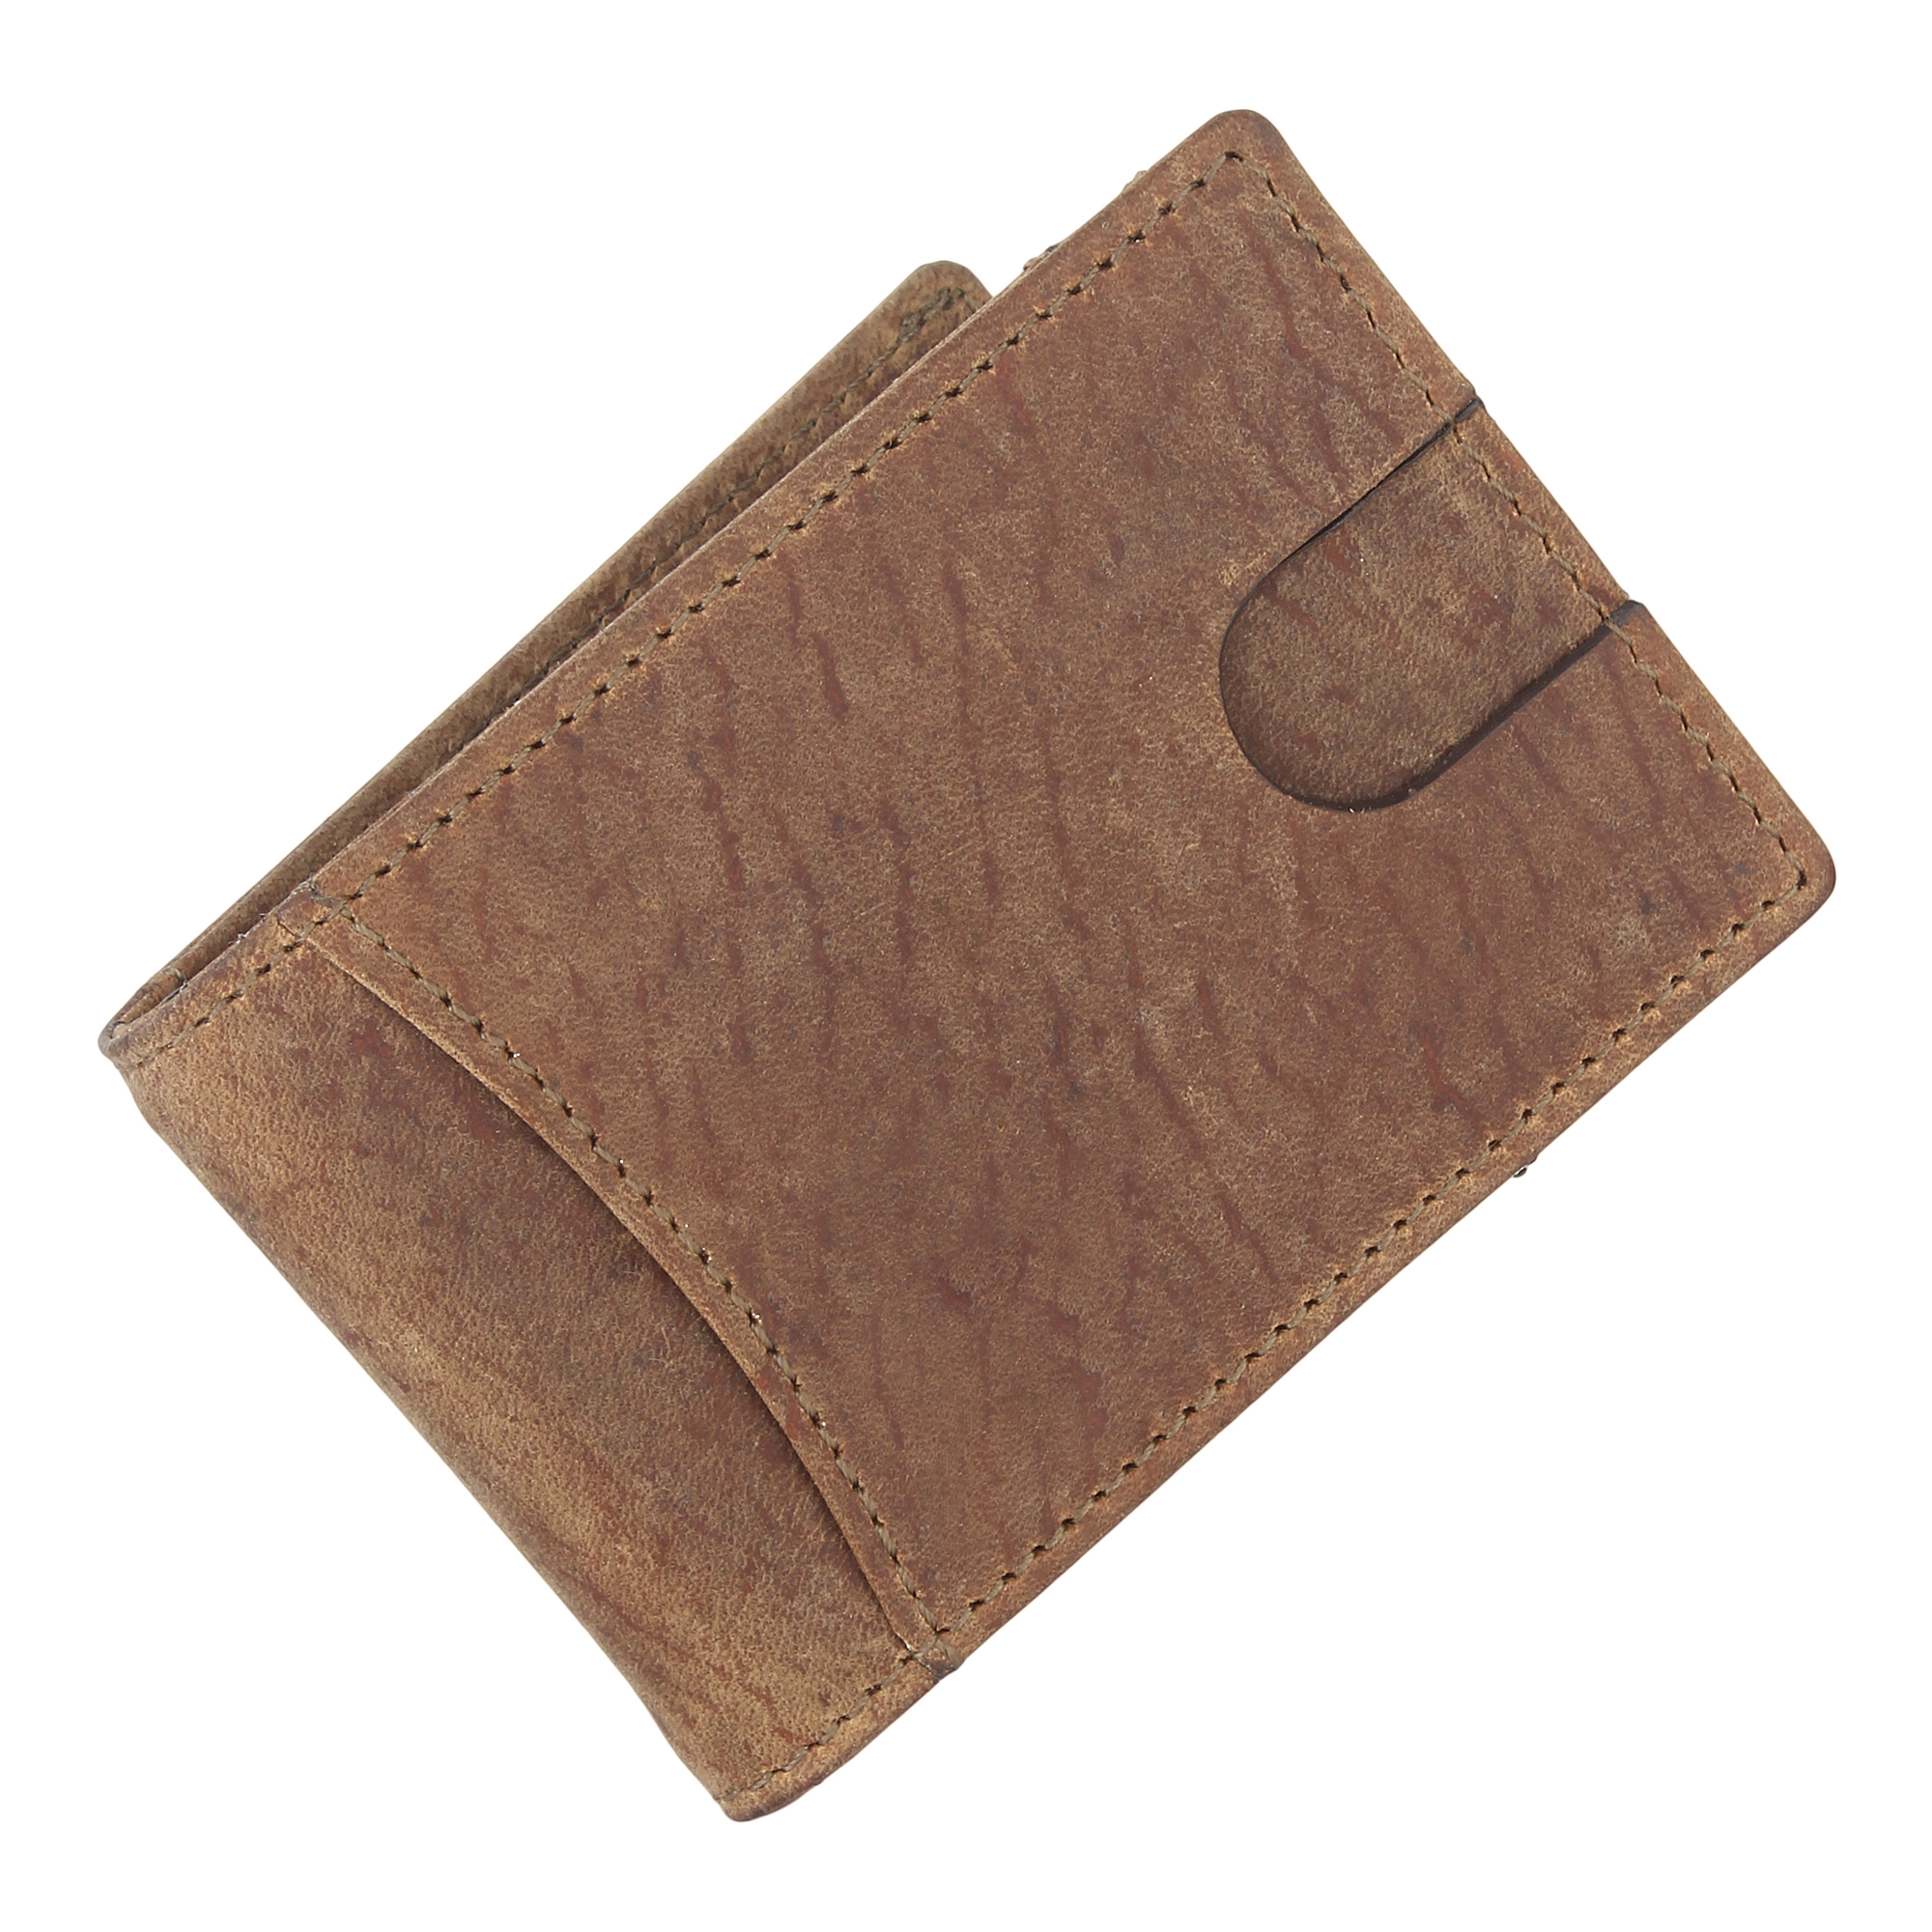 Leather Card Holder Wallet Manufacturers In Poland, Card Holder Wallet Suppliers In Poland, Card Holder Wallet Wholesalers In Poland, Card Holder Wallet Traders In Poland